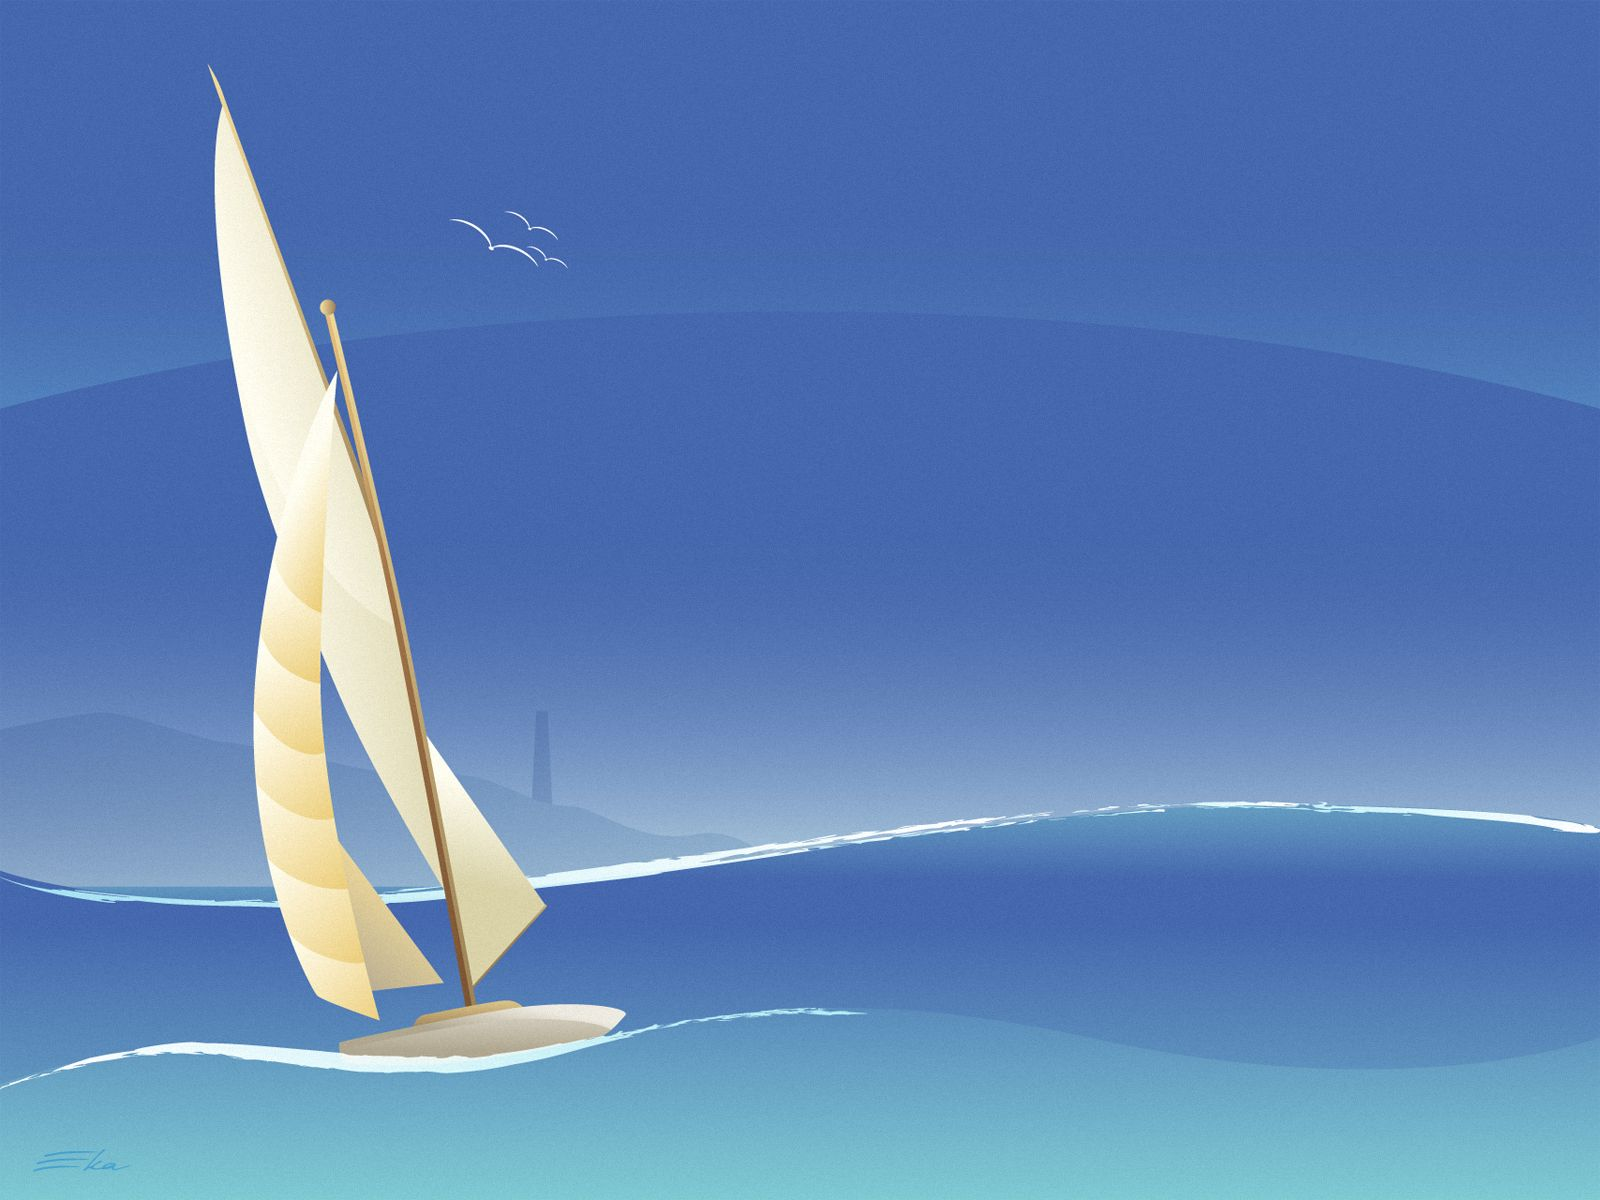 42+] Free Sailboat Wallpapers